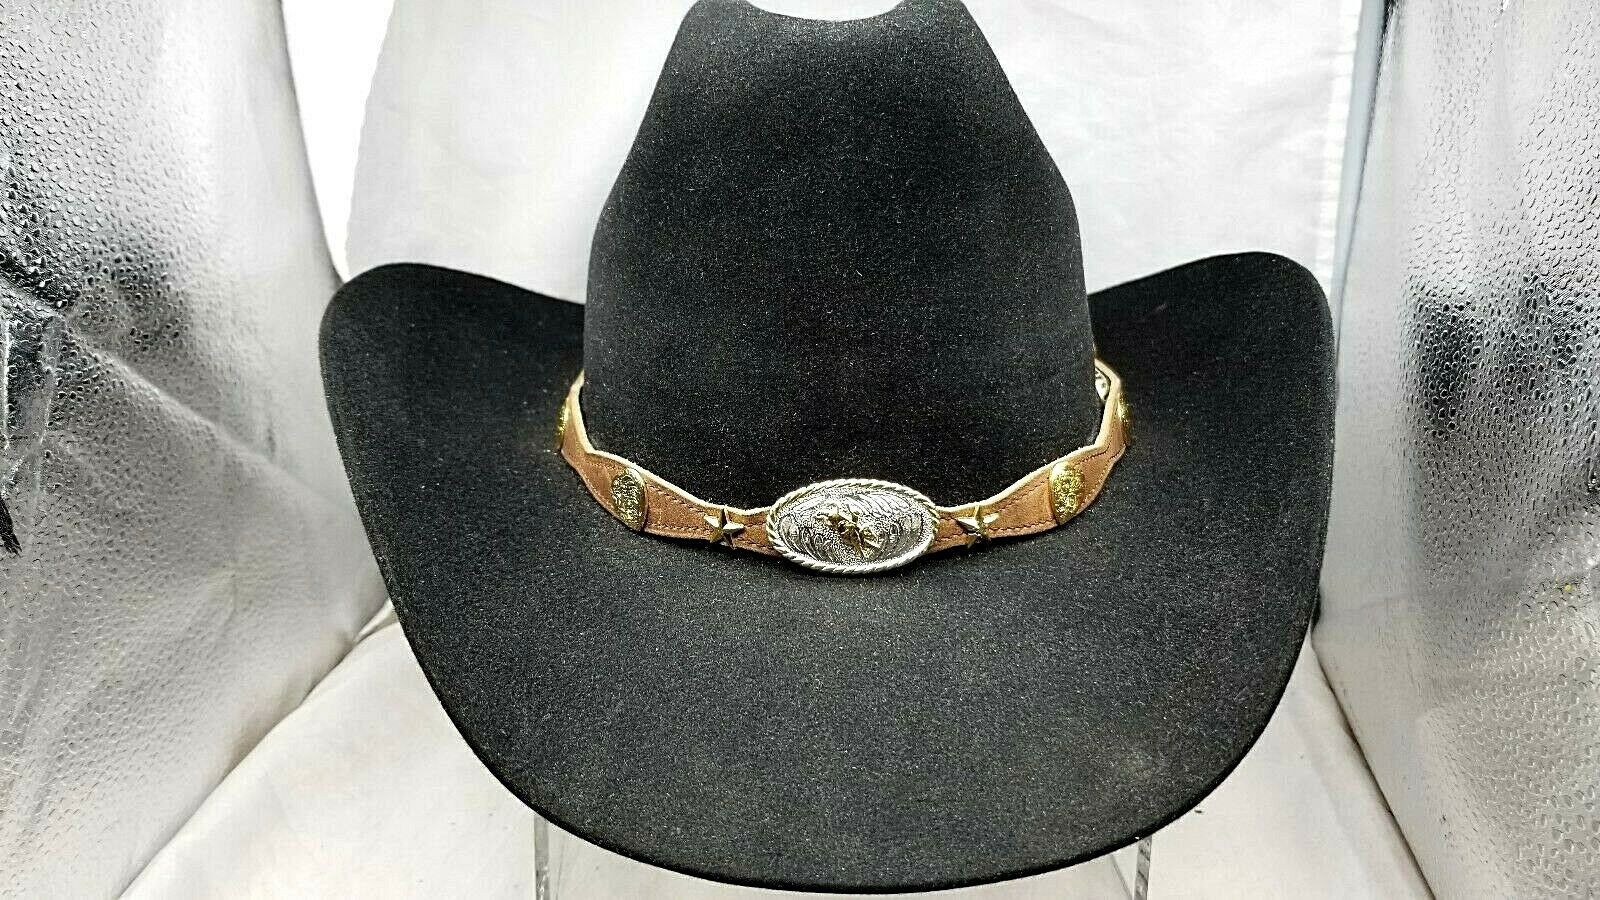 HATBAND I HEART BULLRIDER Scalloped Brown Leather w STAR Conchos Cowboy Hat Band